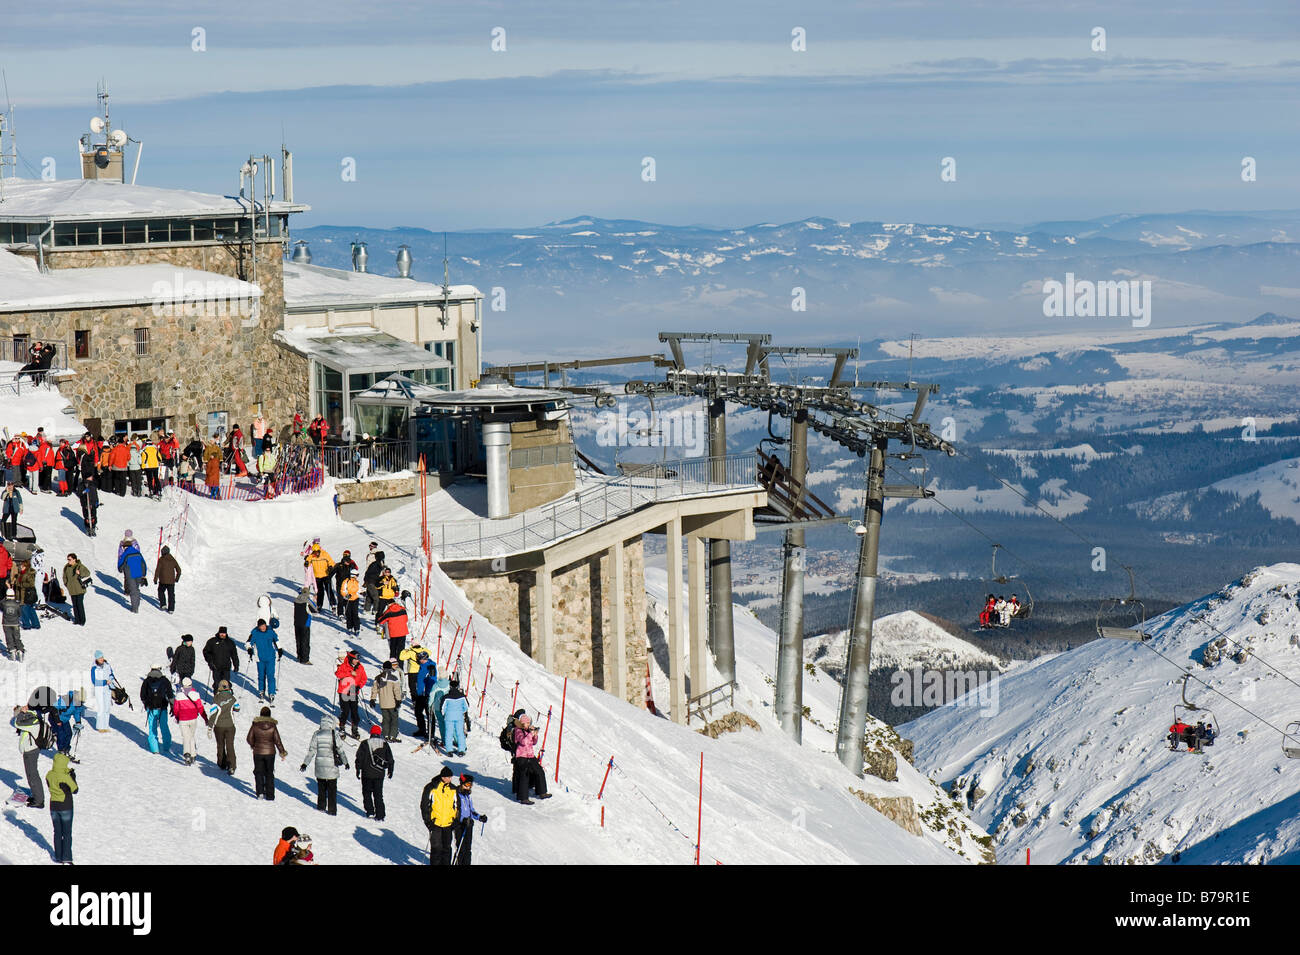 Holidaymakers Enjoy Winter Sports On Slopes Of Kasprowy Wierch Stock